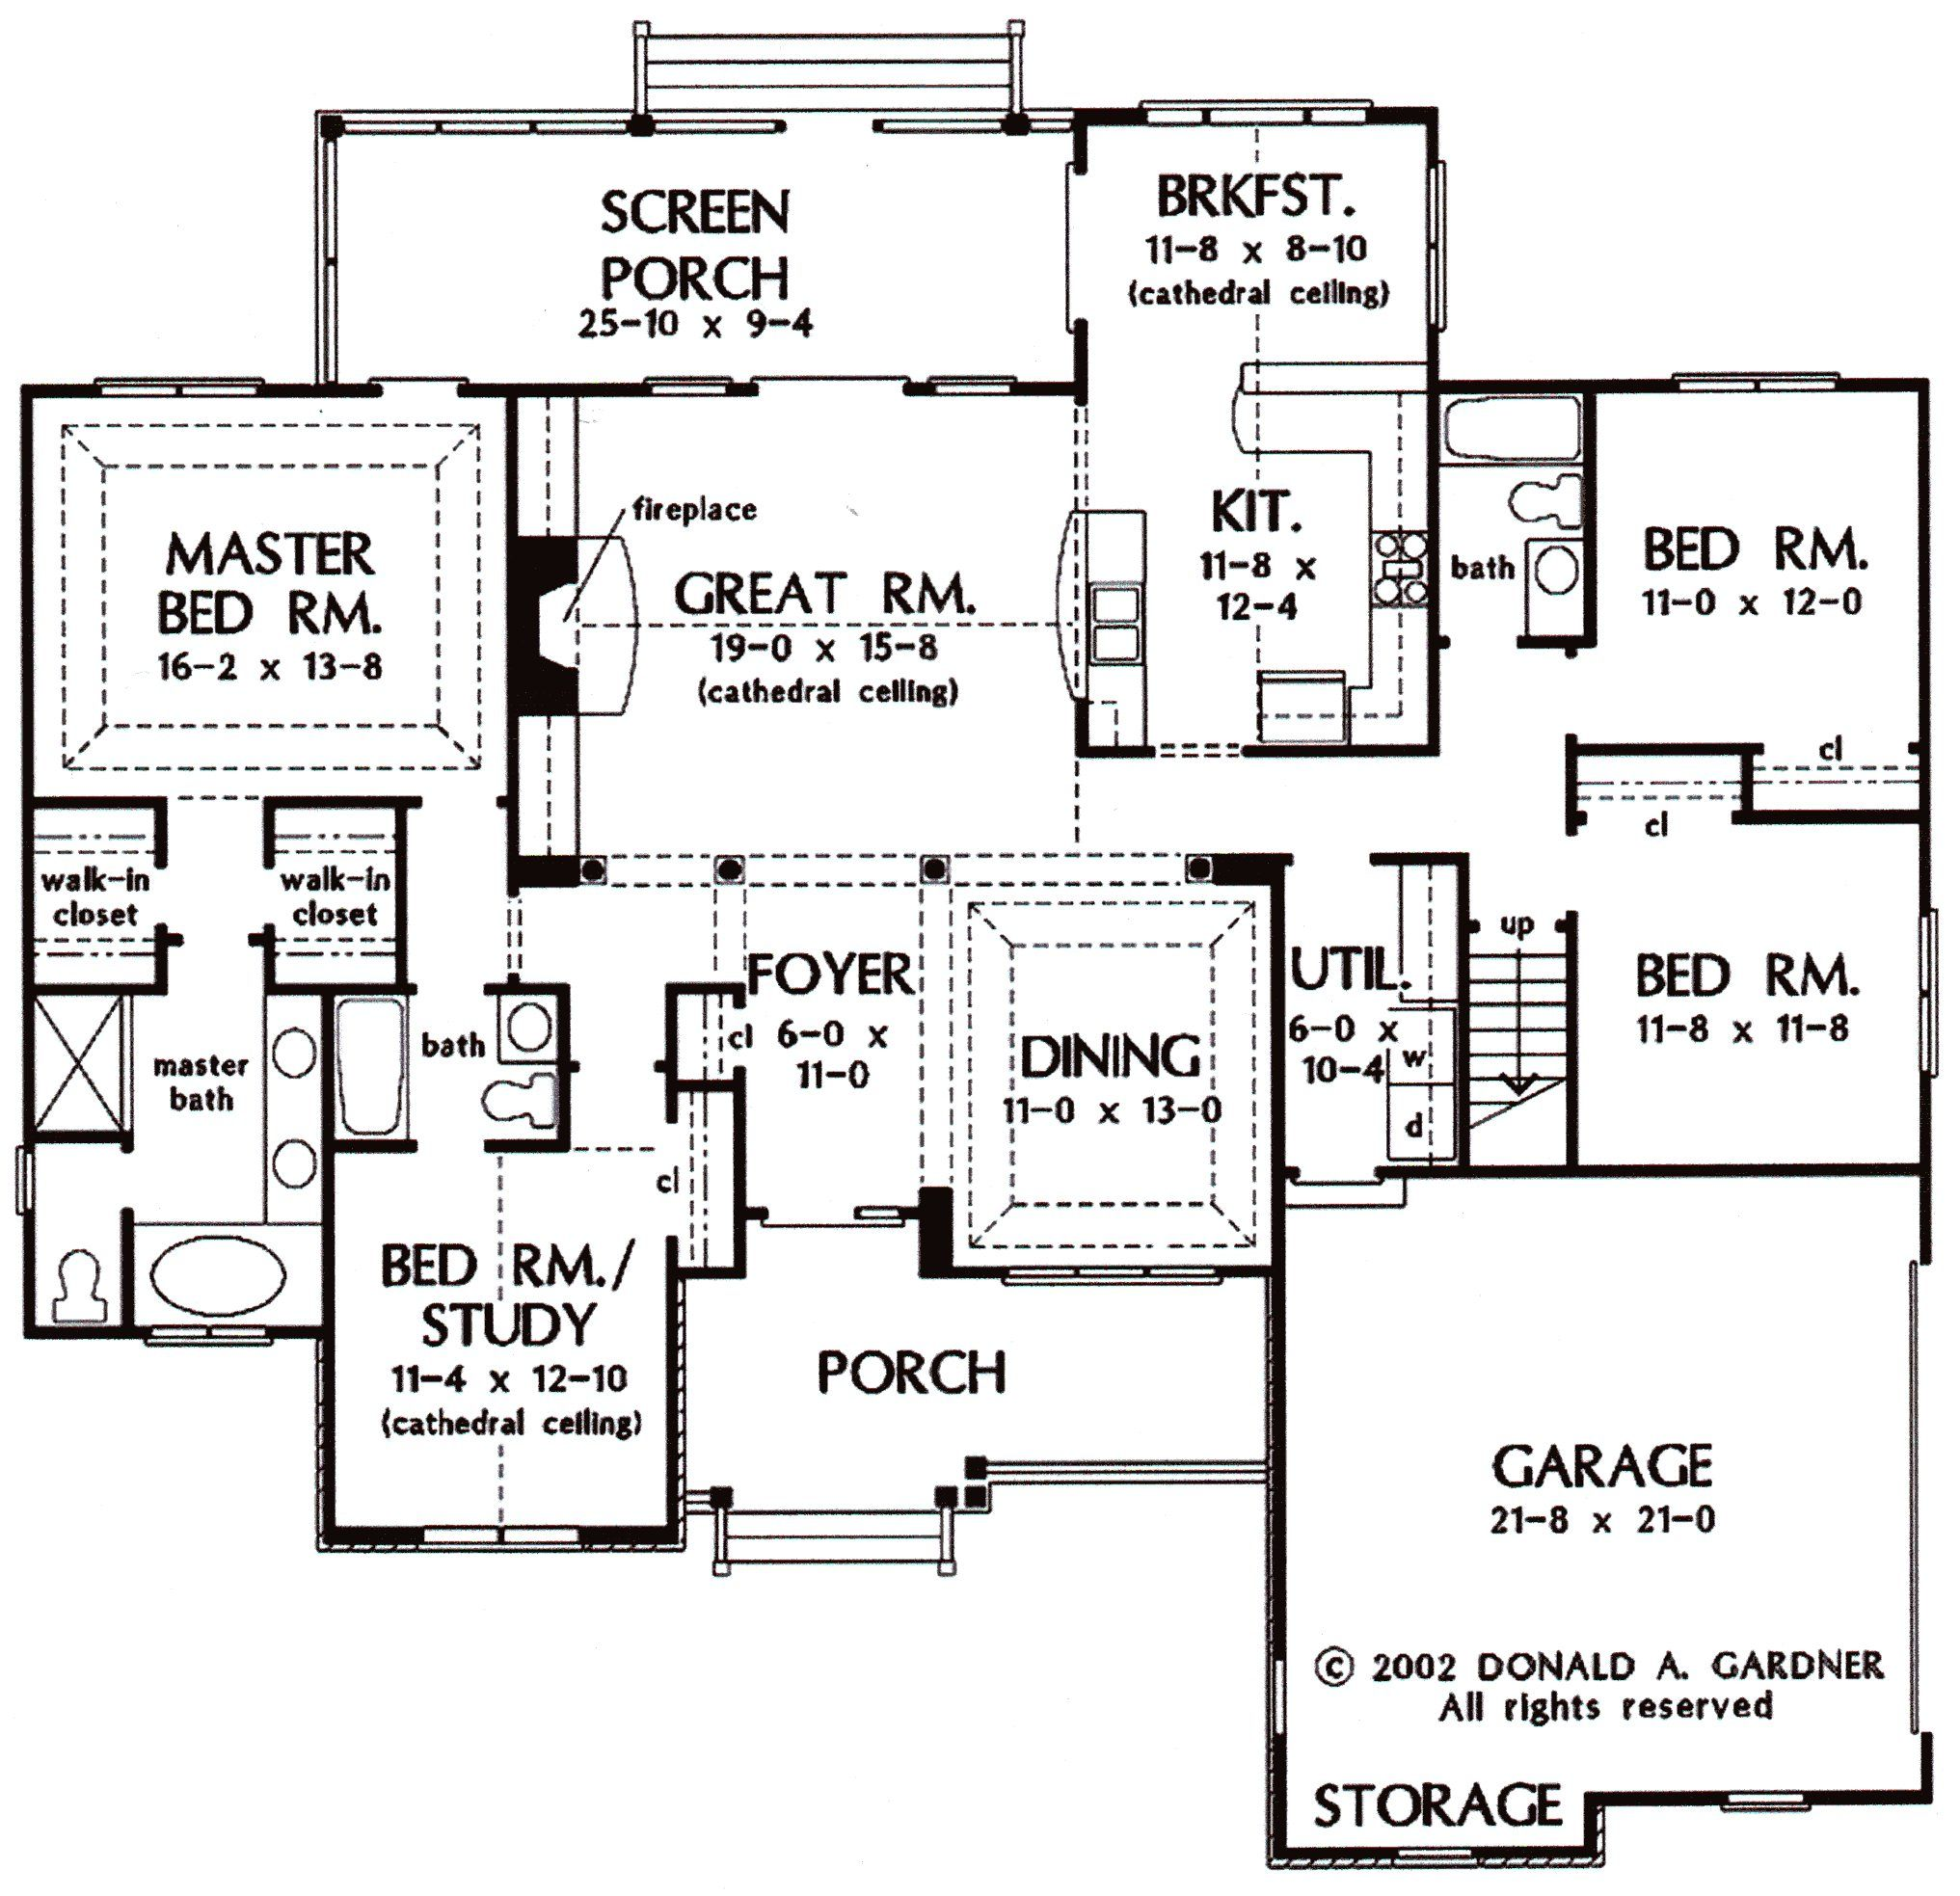 Free house plans 2000 sq ft house design ideas Free house plans